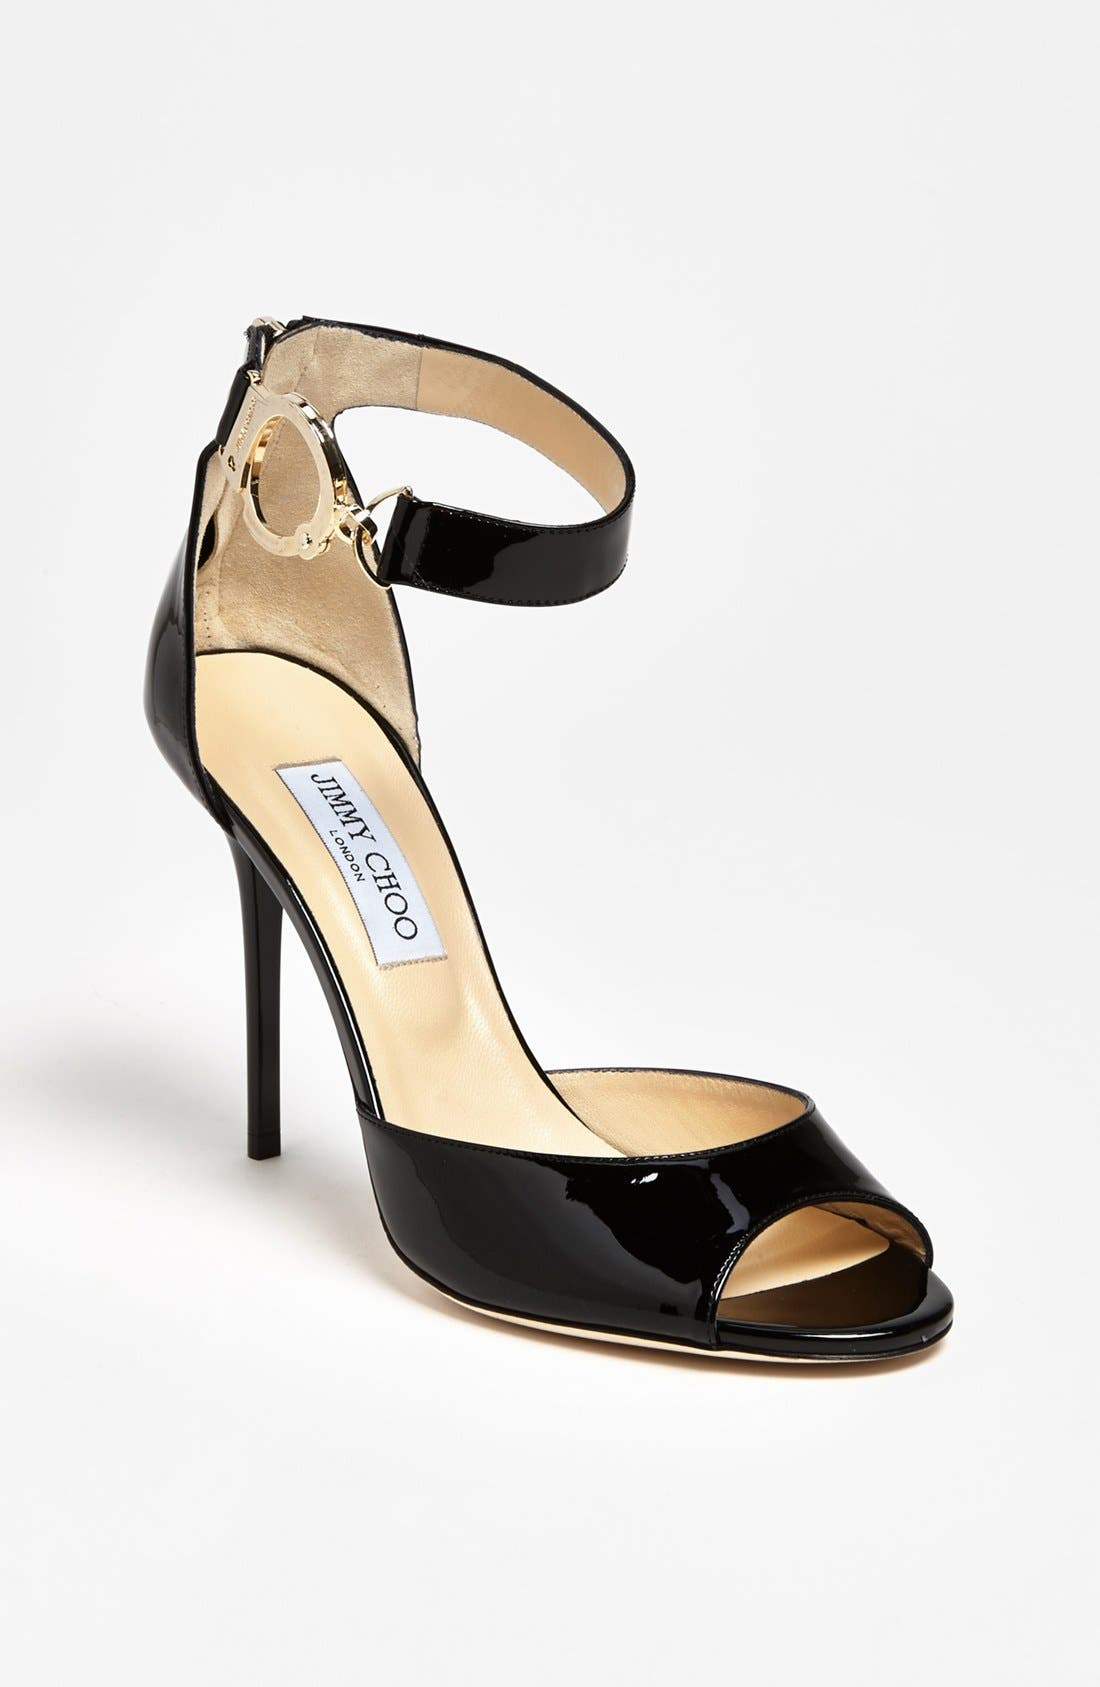 Alternate Image 1 Selected - Jimmy Choo 'Hand Cuff' Sandal